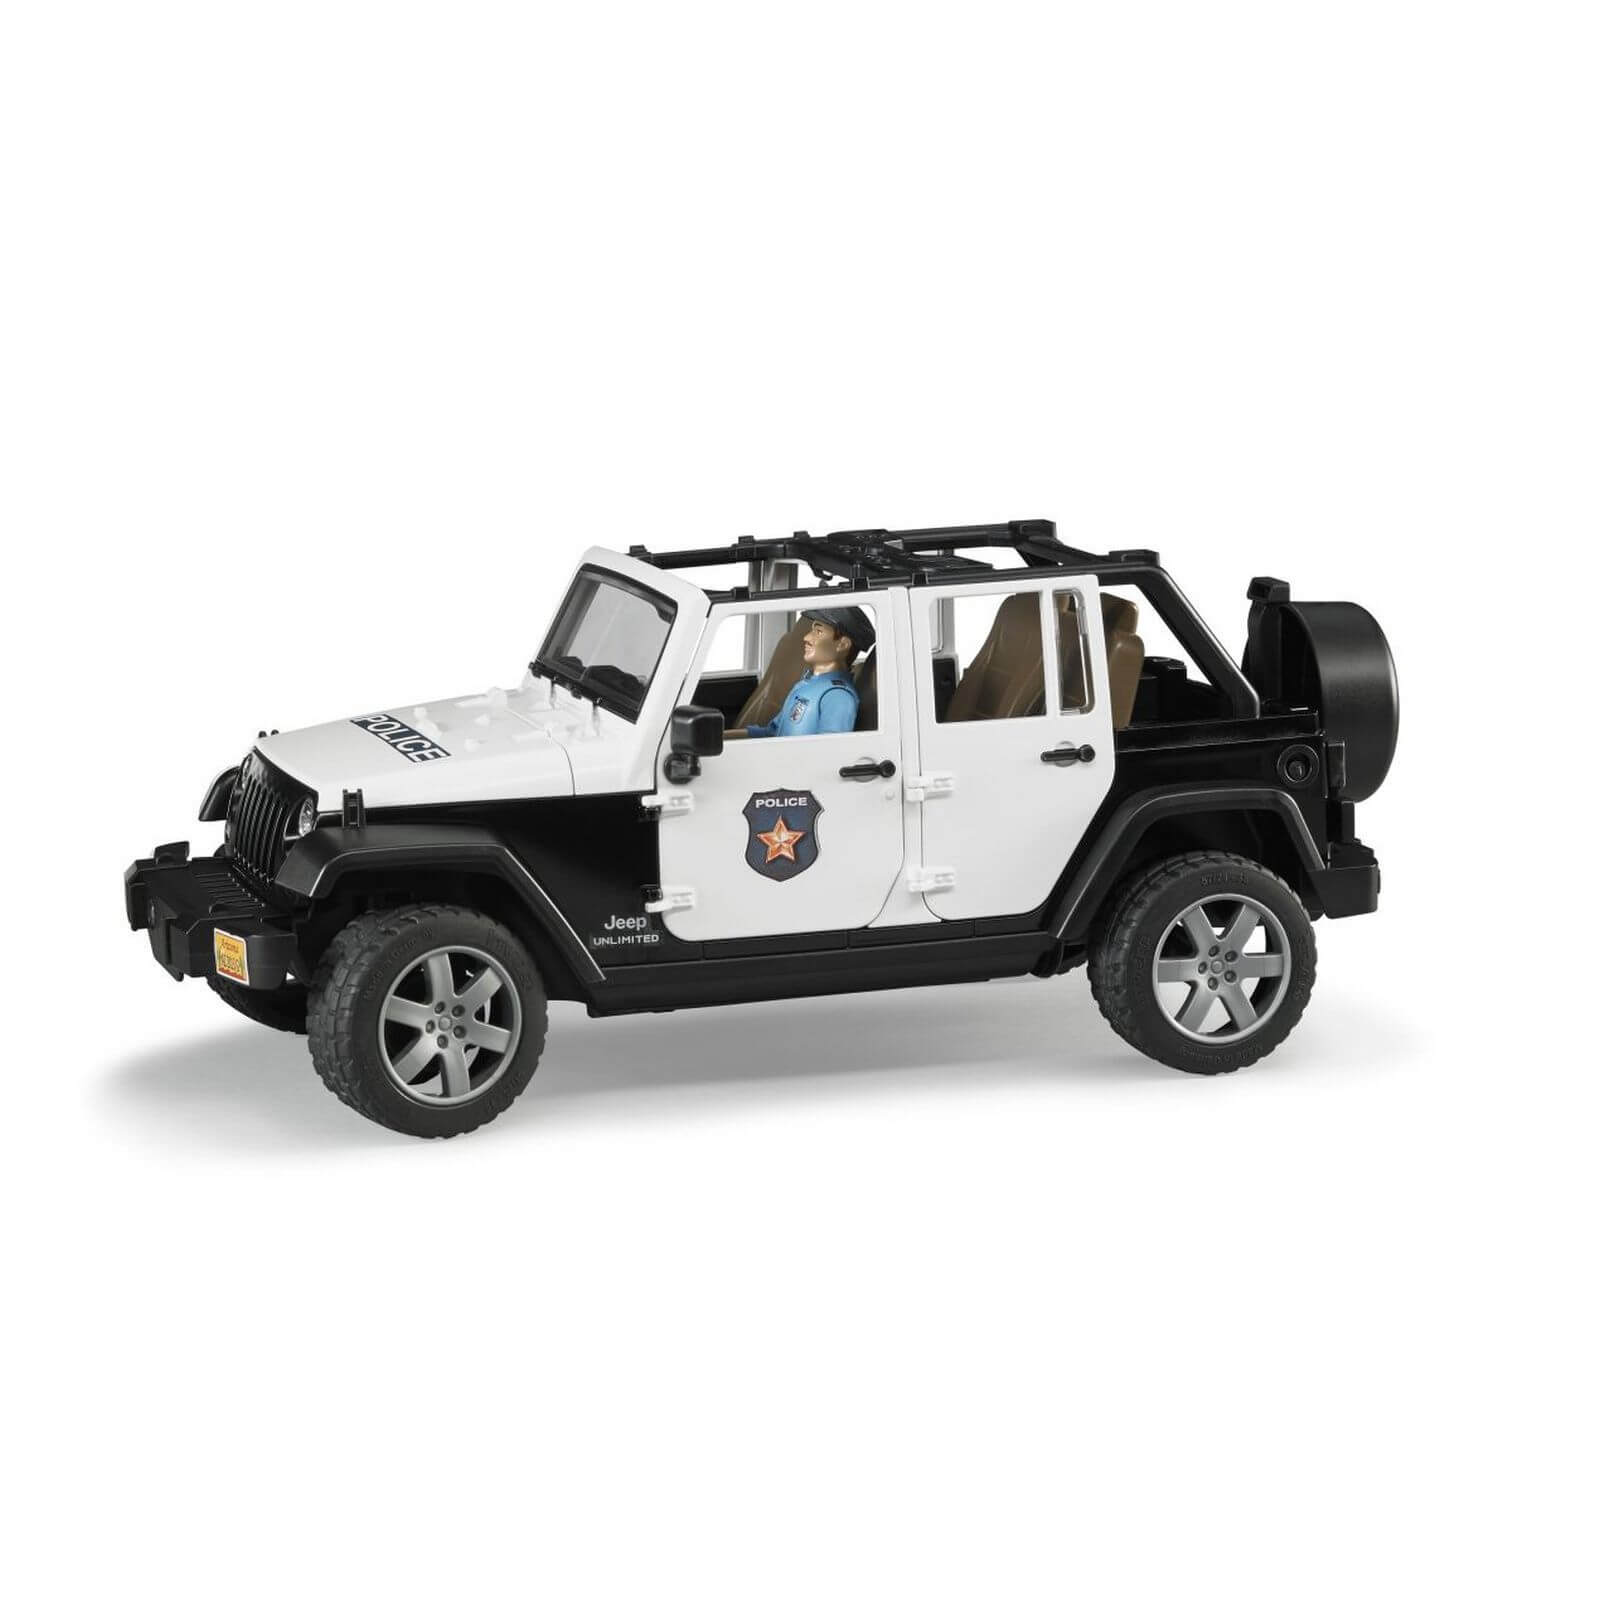 bruder jeep wrangler rubicon police vehicle with. Black Bedroom Furniture Sets. Home Design Ideas